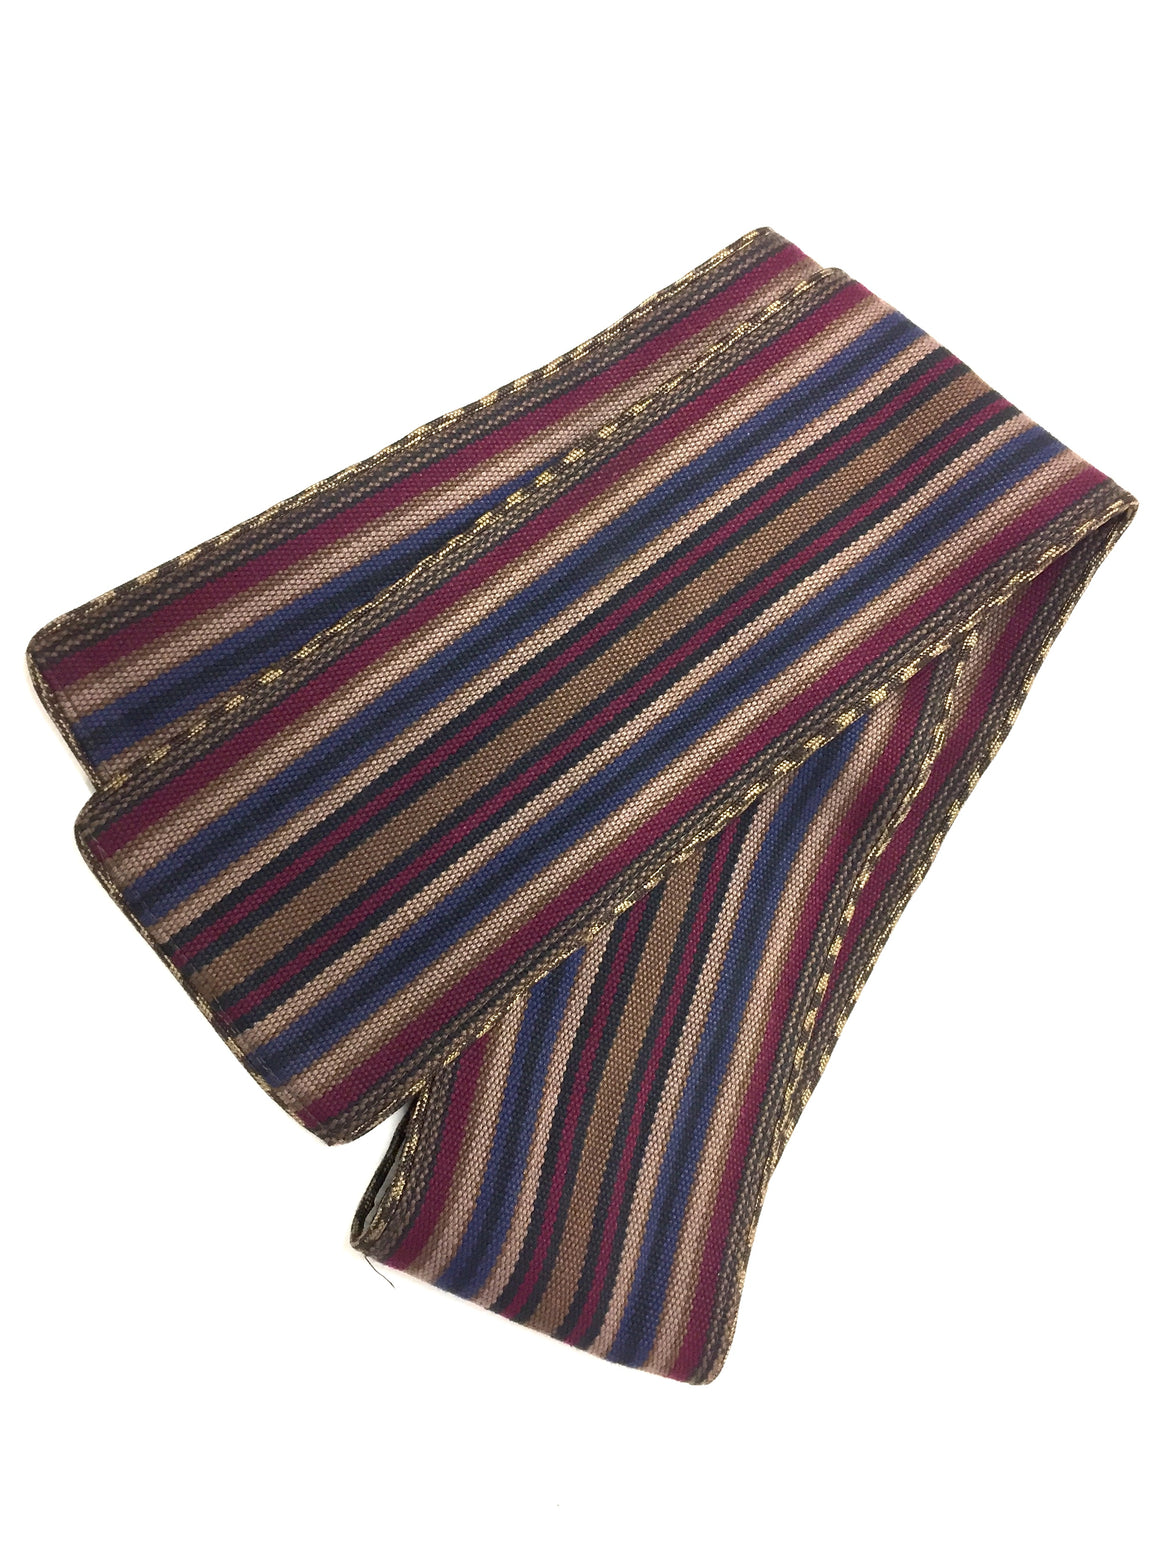 CALVIN KLEIN  Vintage  Burgundy/Multicolor Striped Woven Cotton Sash Belt